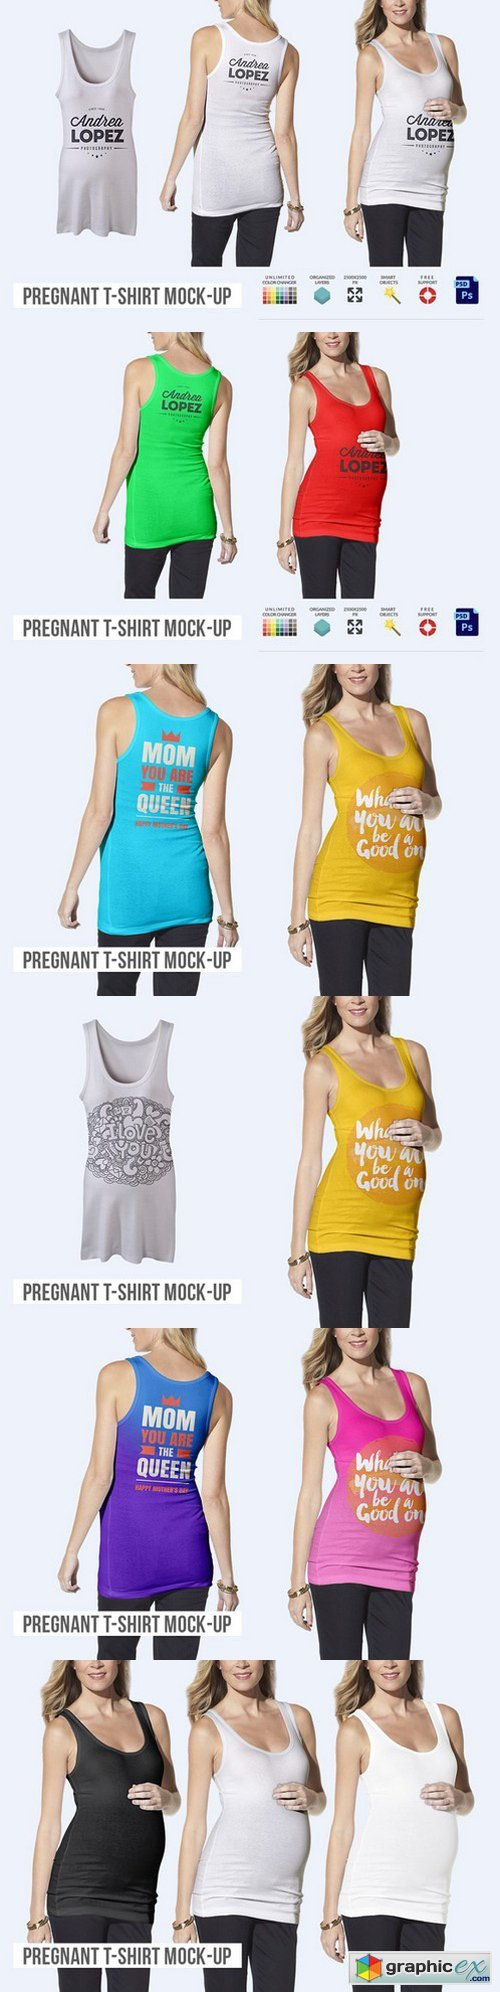 pregnant t-shirt mock-up » free download vector stock image photoshop icon  ex graphic